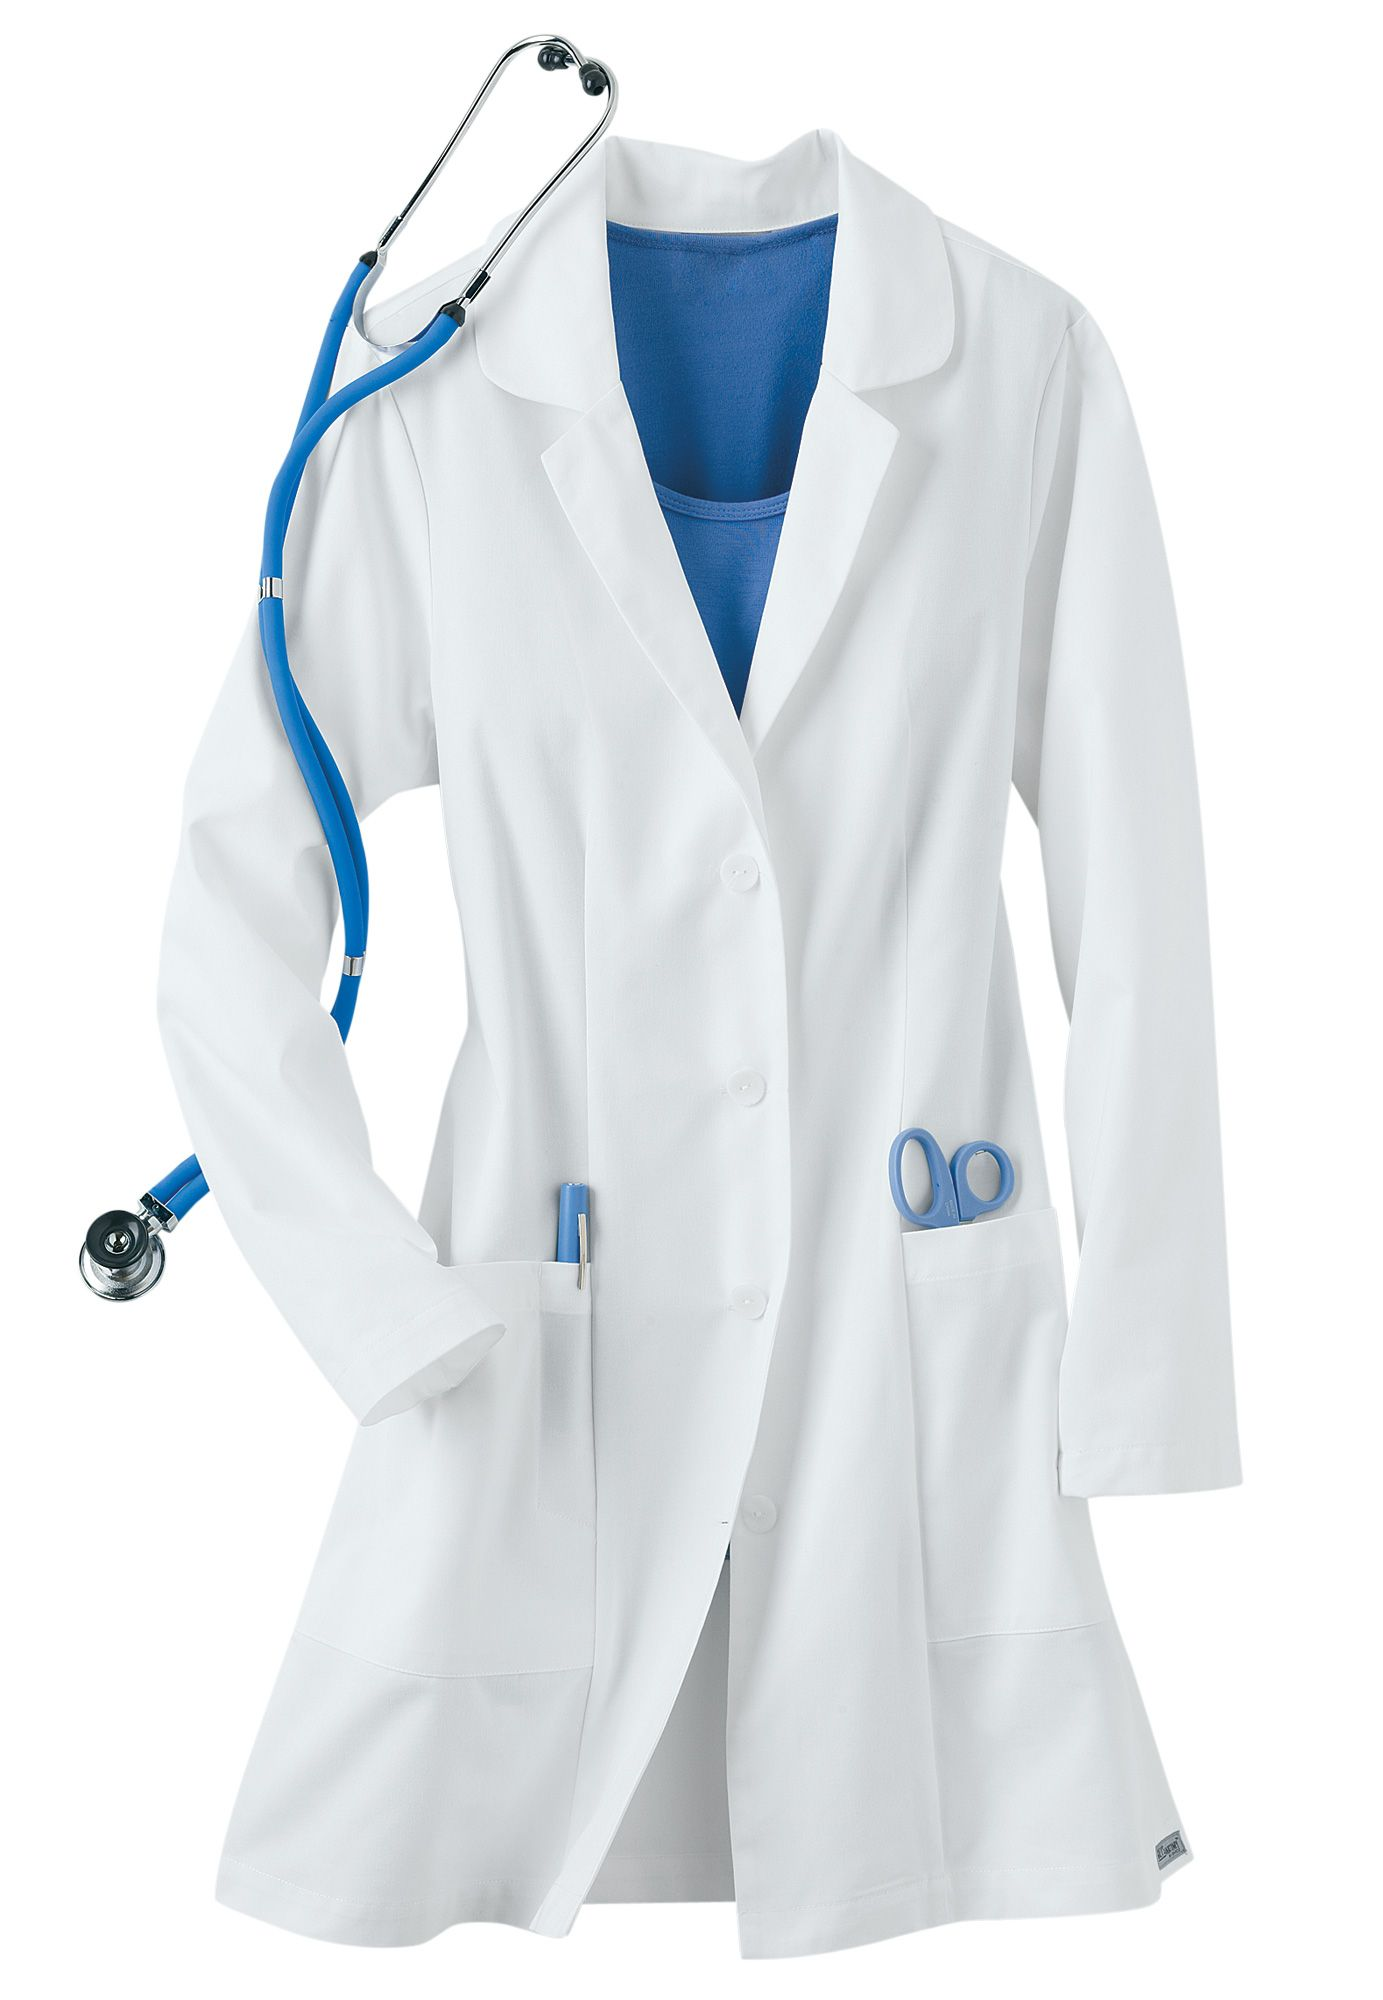 Grey\'s Anatomy fashion lab coat | Scrubs and Beyond | Good Lookin ...